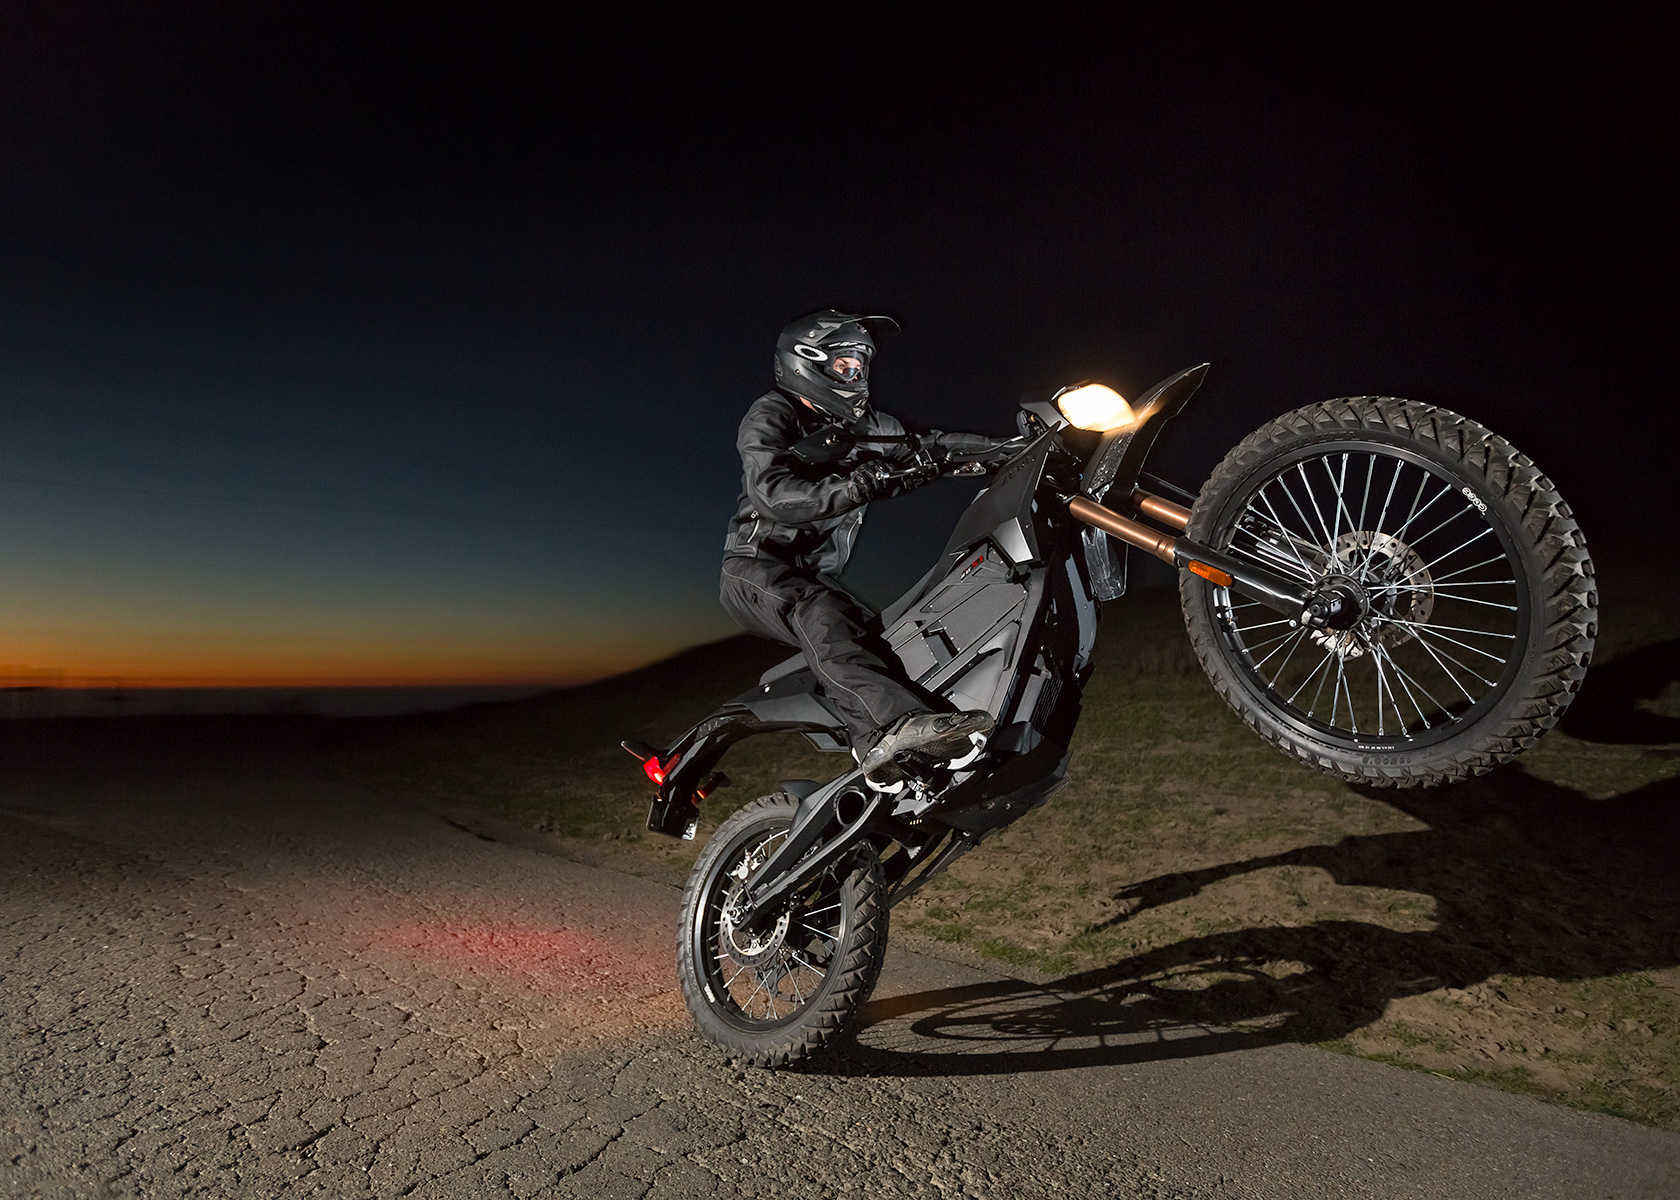 2013 Zero FX Electric Motorcycle: